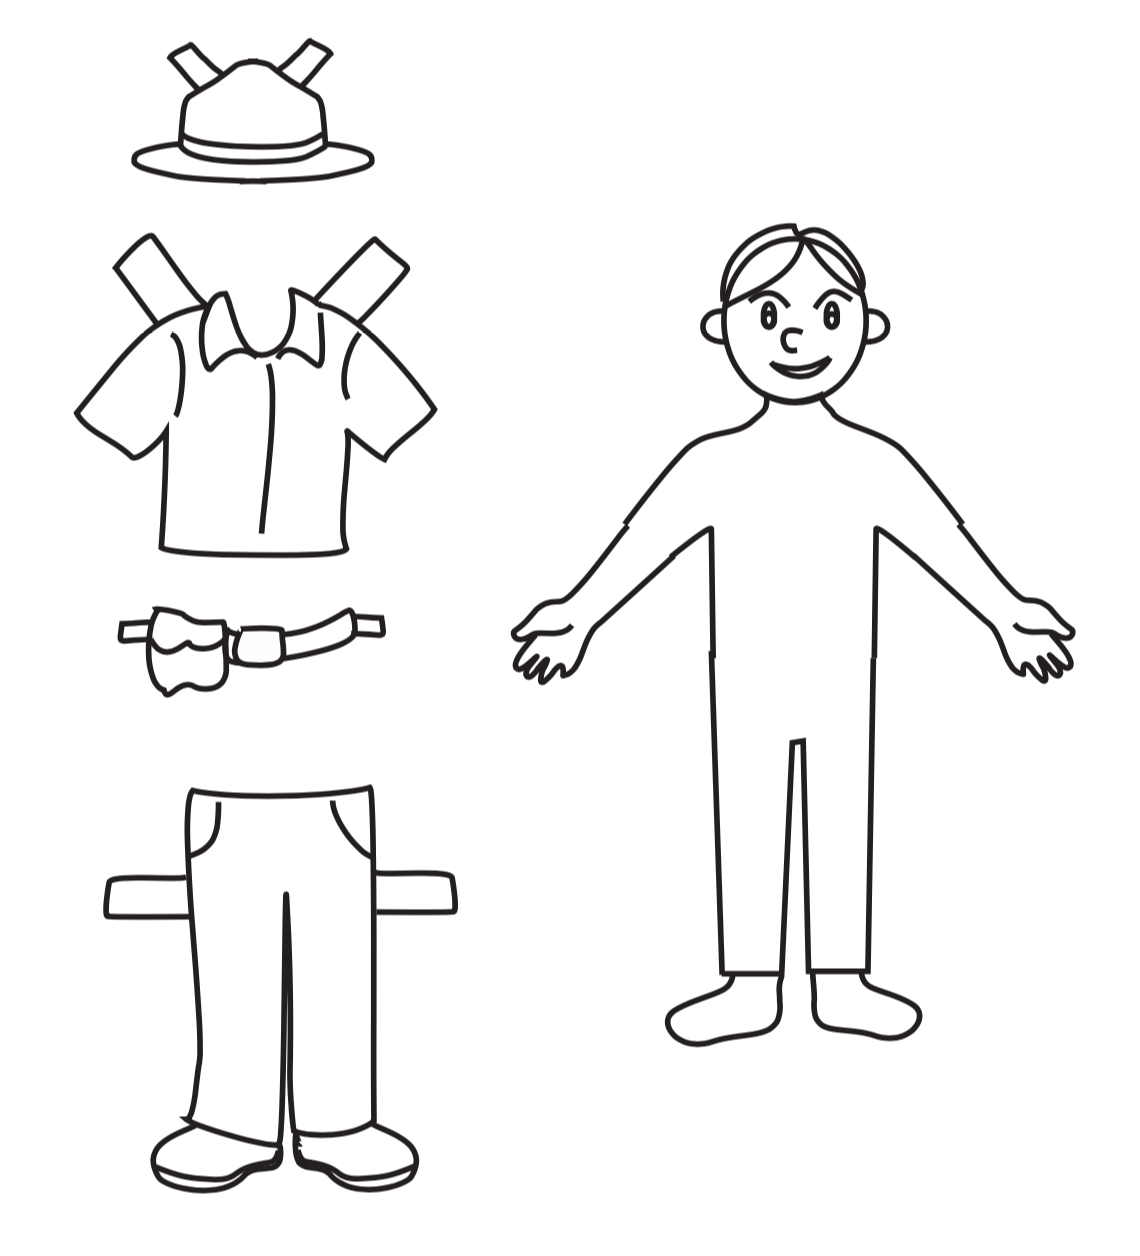 park range paper doll for kids